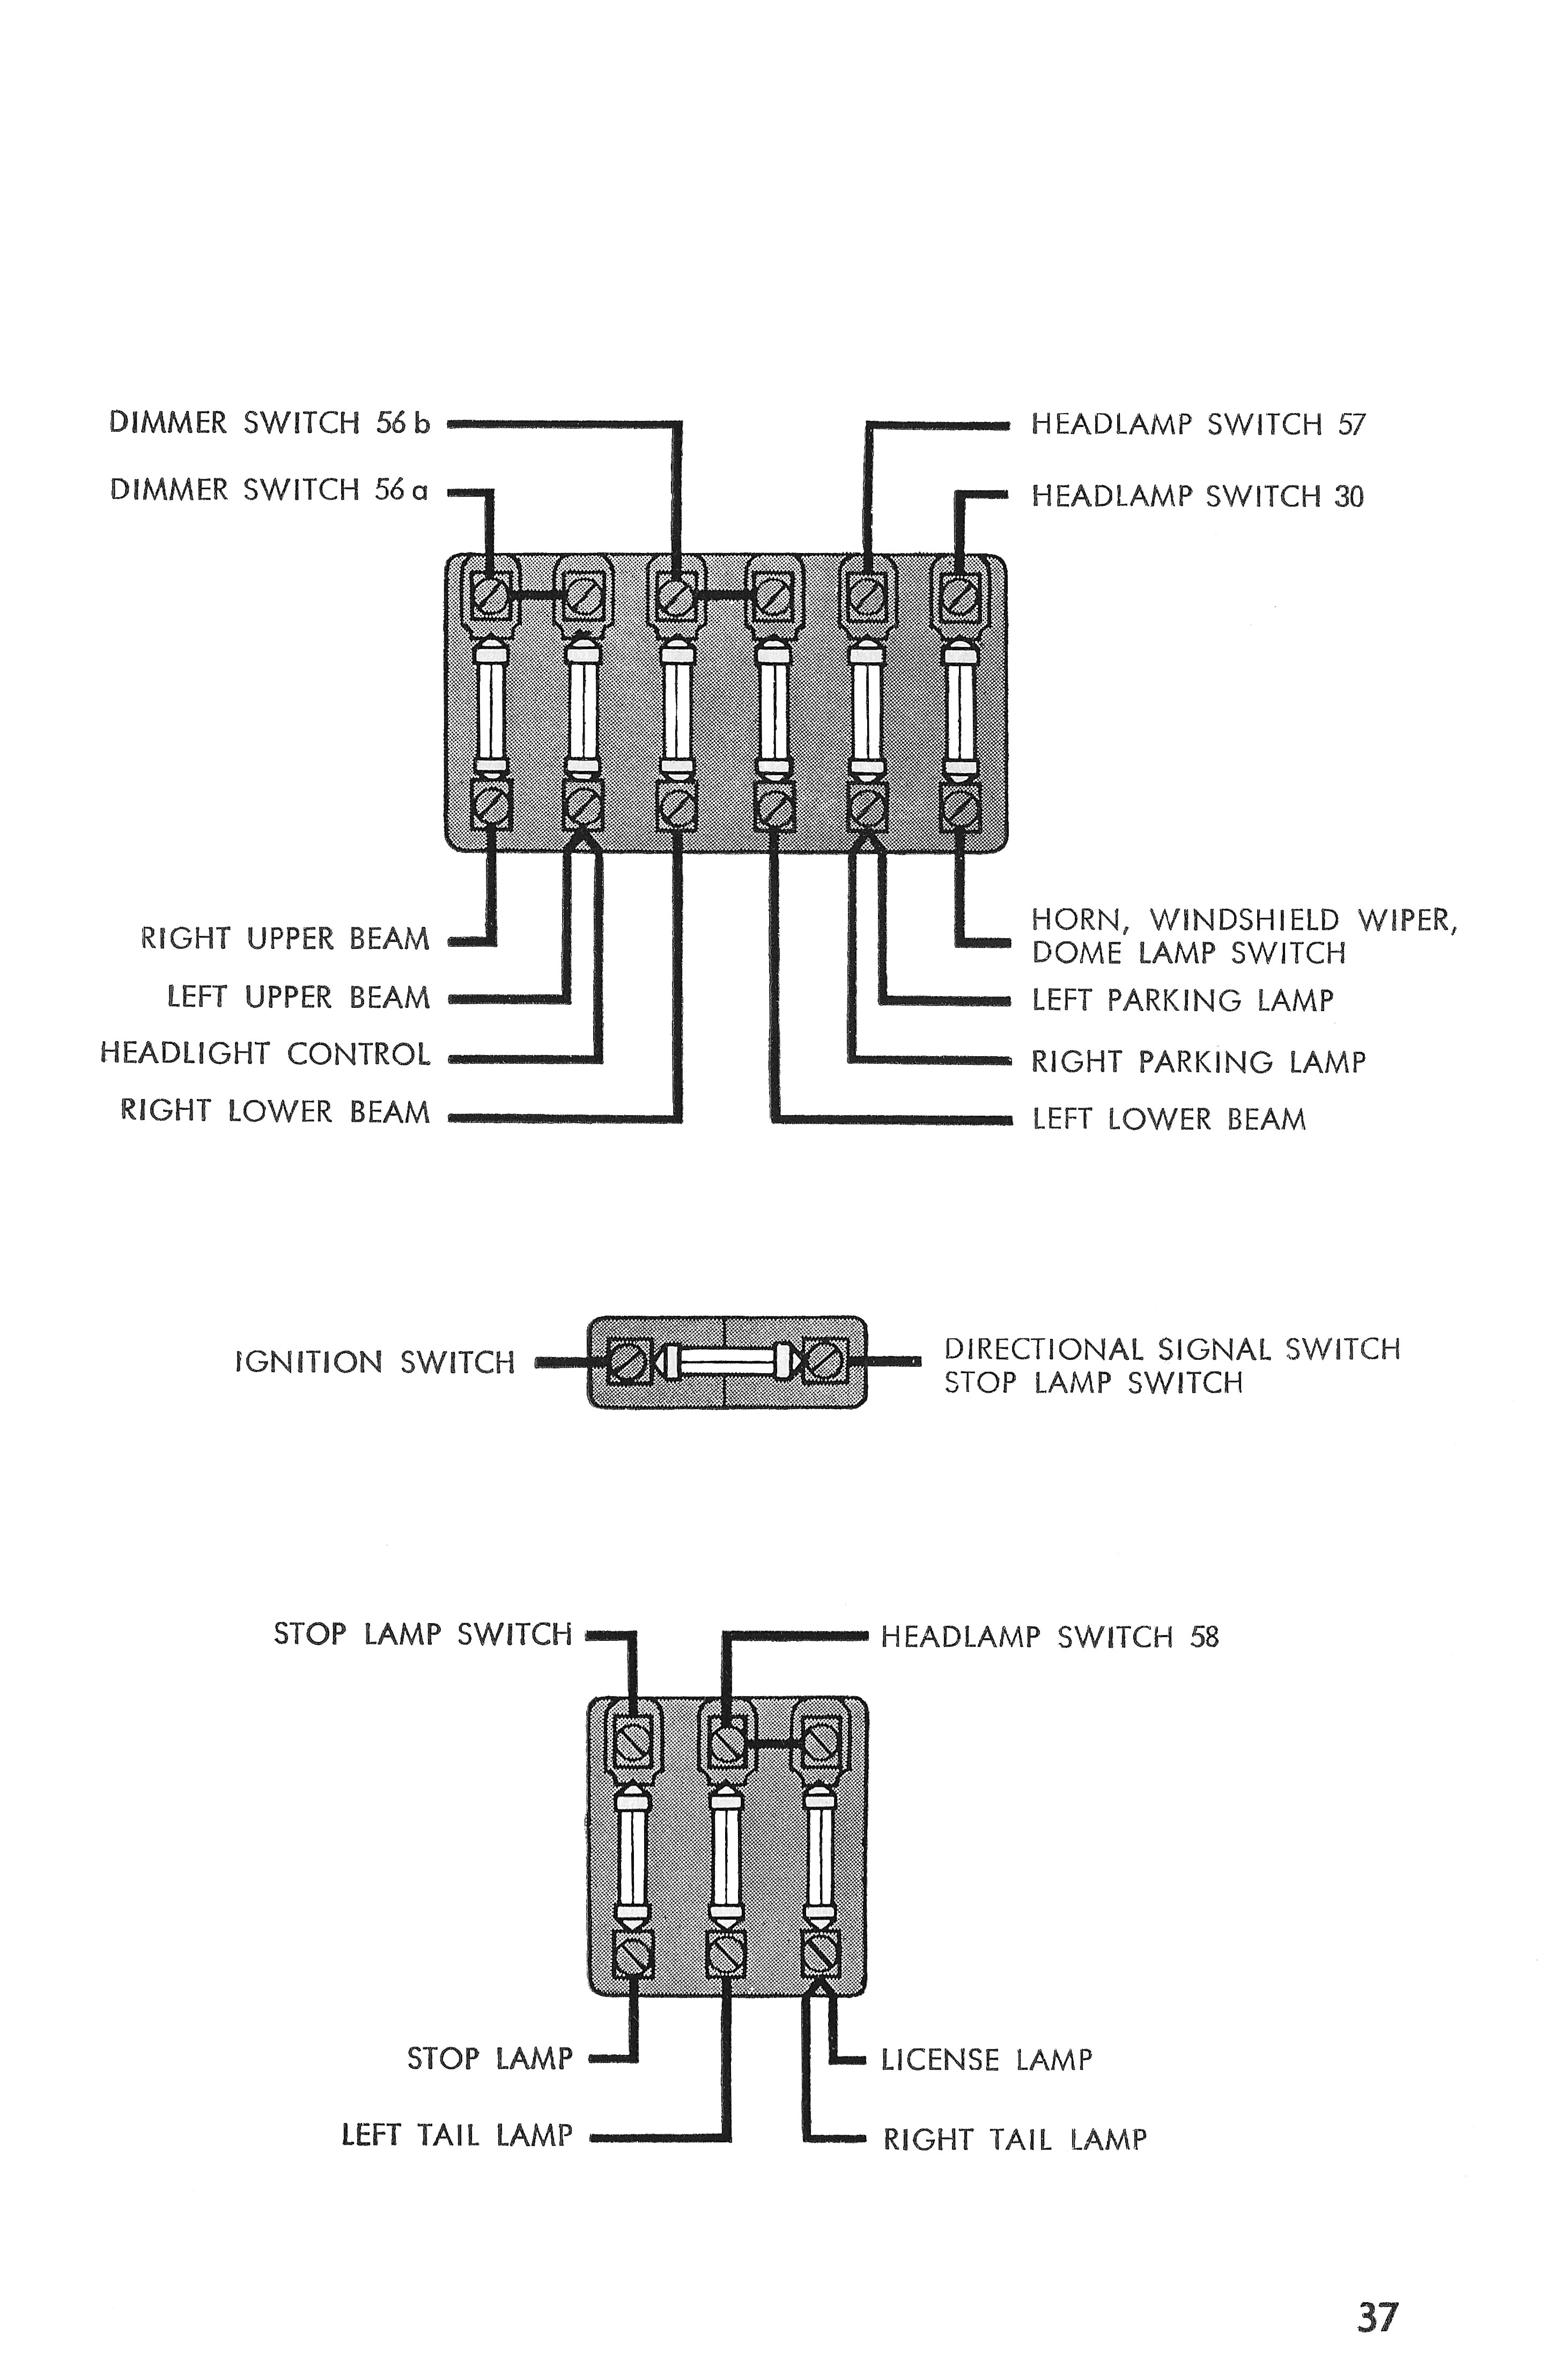 56 Vw Bug Wiring Diagram - Wiring Diagrams Lol Vw Cabriolet Ignition Wiring Diagram on vw type 3 wiring diagram, vw wiring harness, vw bug wiring diagram, 2011 vw jetta tdi fuse diagram, 2011 vw jetta fuse panel diagram, vw door wiring diagram, vw ecu wiring diagram, vw charging system diagram, vw exhaust diagram, vw shift linkage diagram, 1977 vw bus wiring diagram, vw ignition lock cylinder diagram, vw distributor diagram, 2000 hyundai accent radio wiring diagram, vw parking brake diagram, system of a car ignition electrical diagram, 1964 chevy wiring diagram, vw coil diagram, 2006 gsxr 600 fuel pump wiring diagram, code 3 light bar wiring diagram,